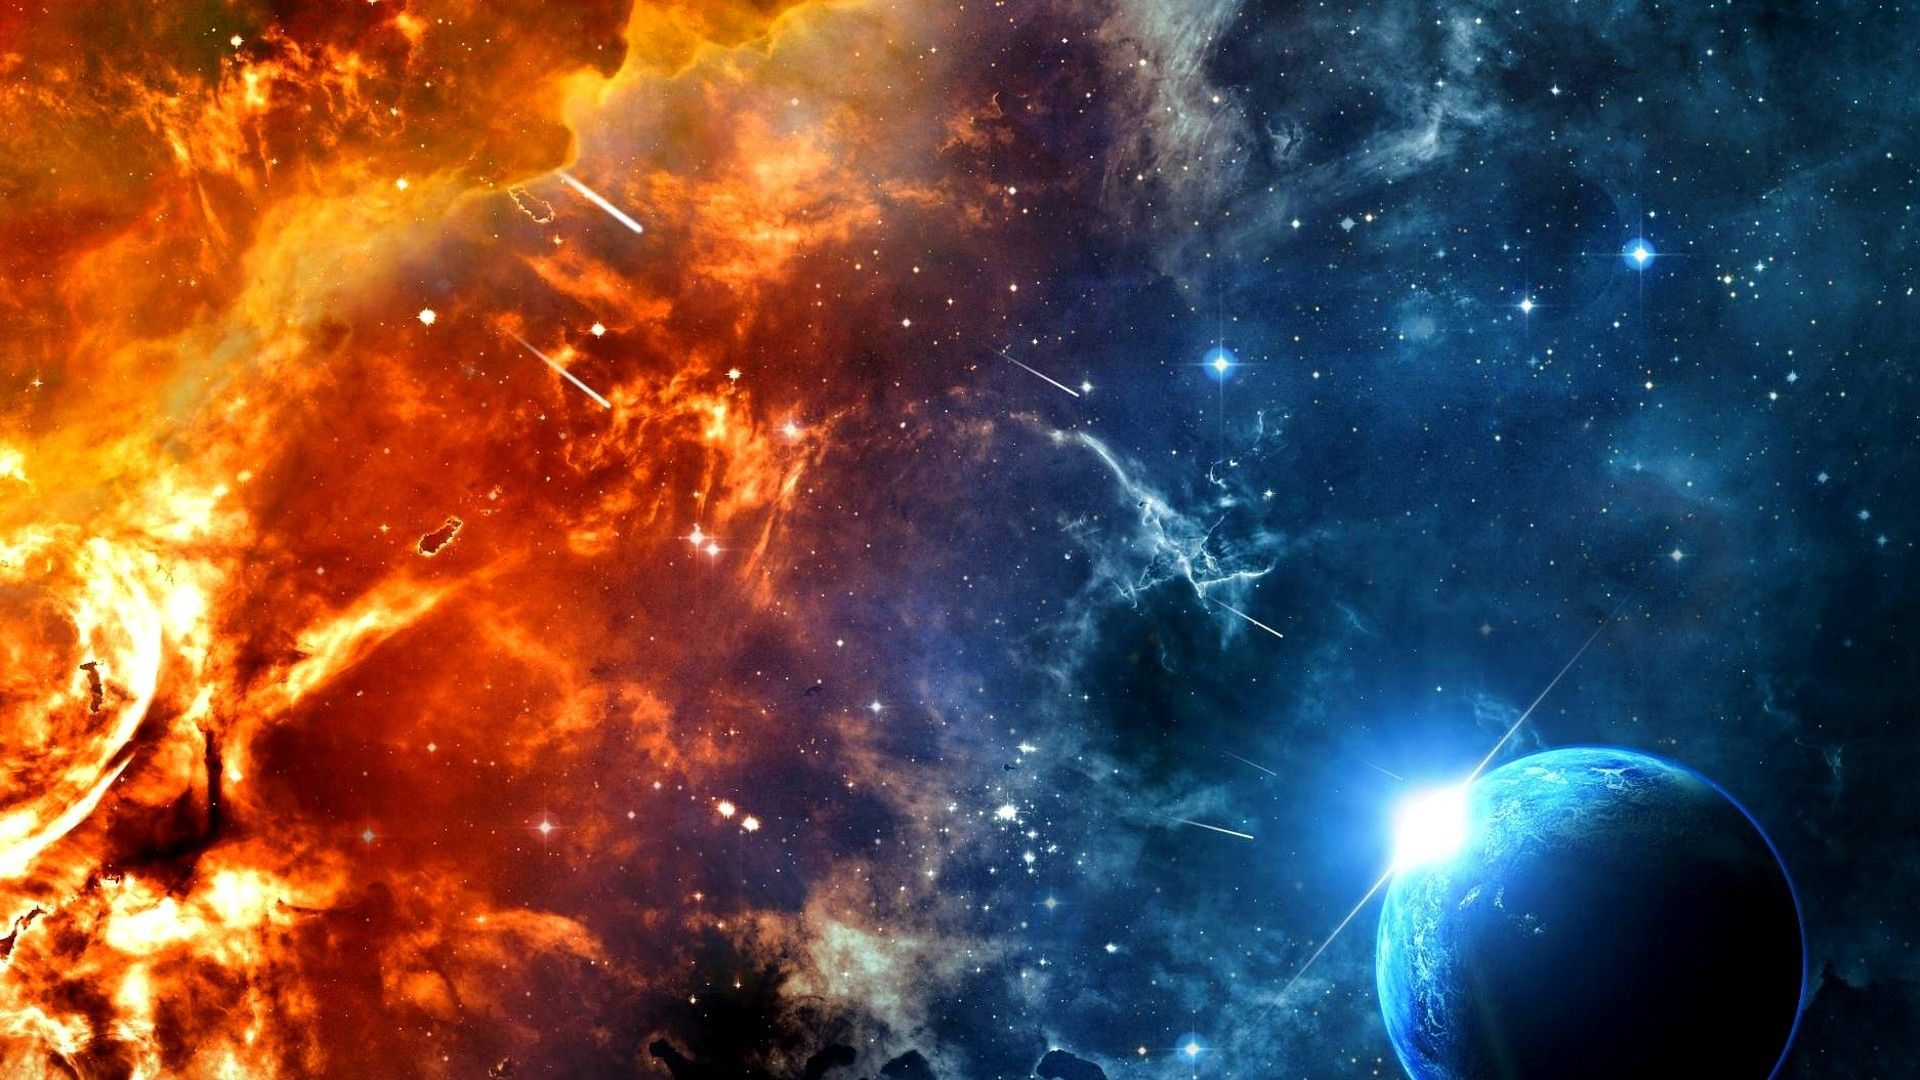 Space hell 1920x1080 hell via allwallpaper parted heavens computer background voltagebd Choice Image